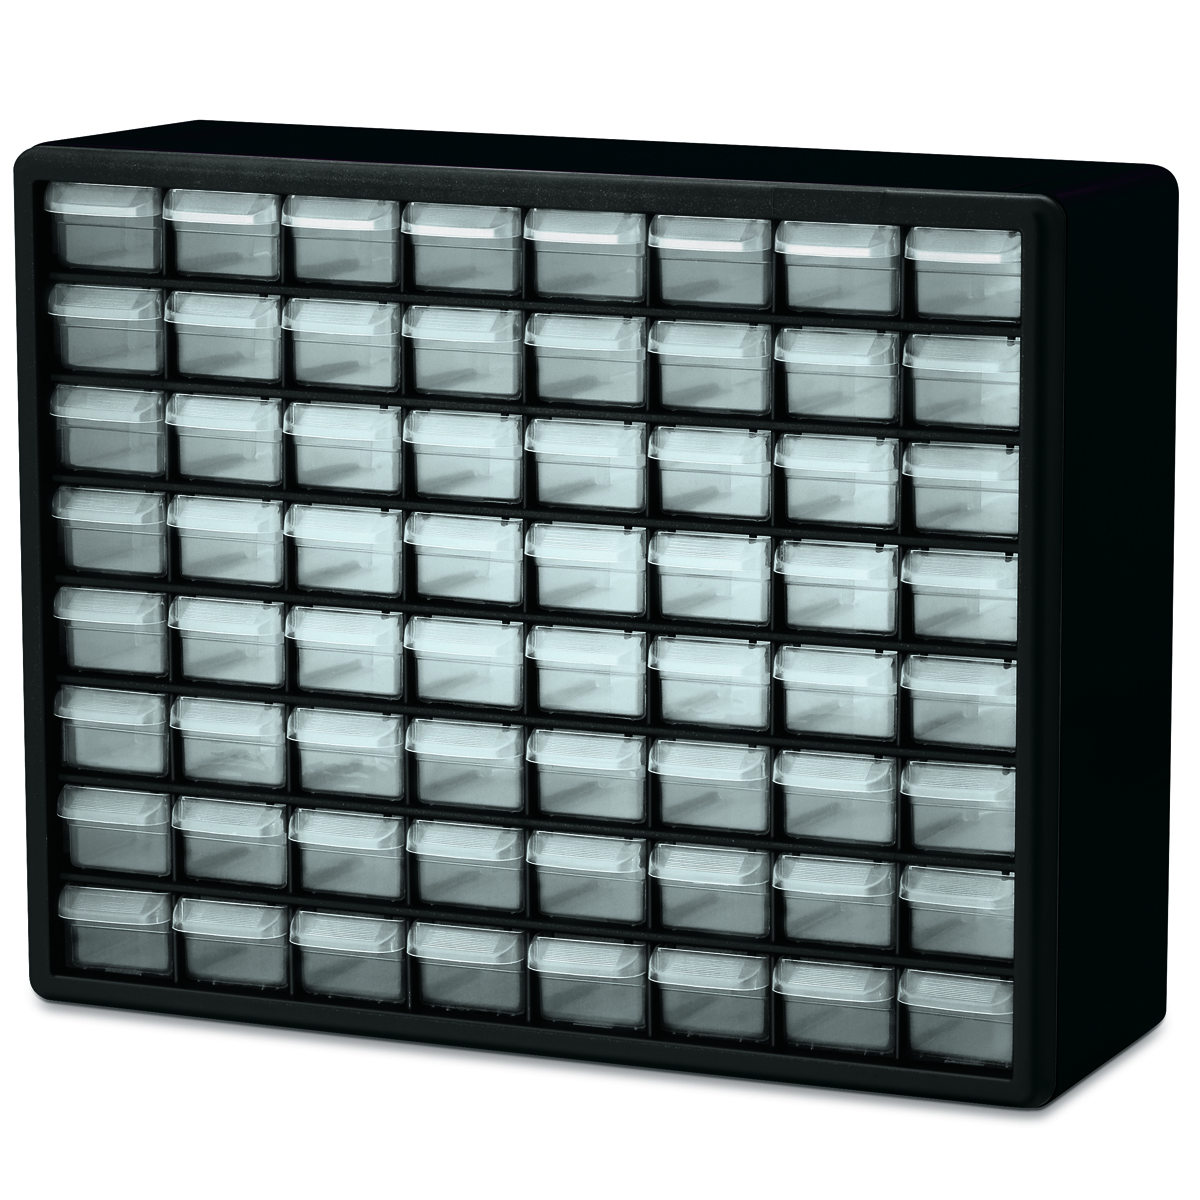 64 Drawer Plastic Storage Cabinet 10164 - Plastic Storage Containers Akro-Bins Wire Shelving